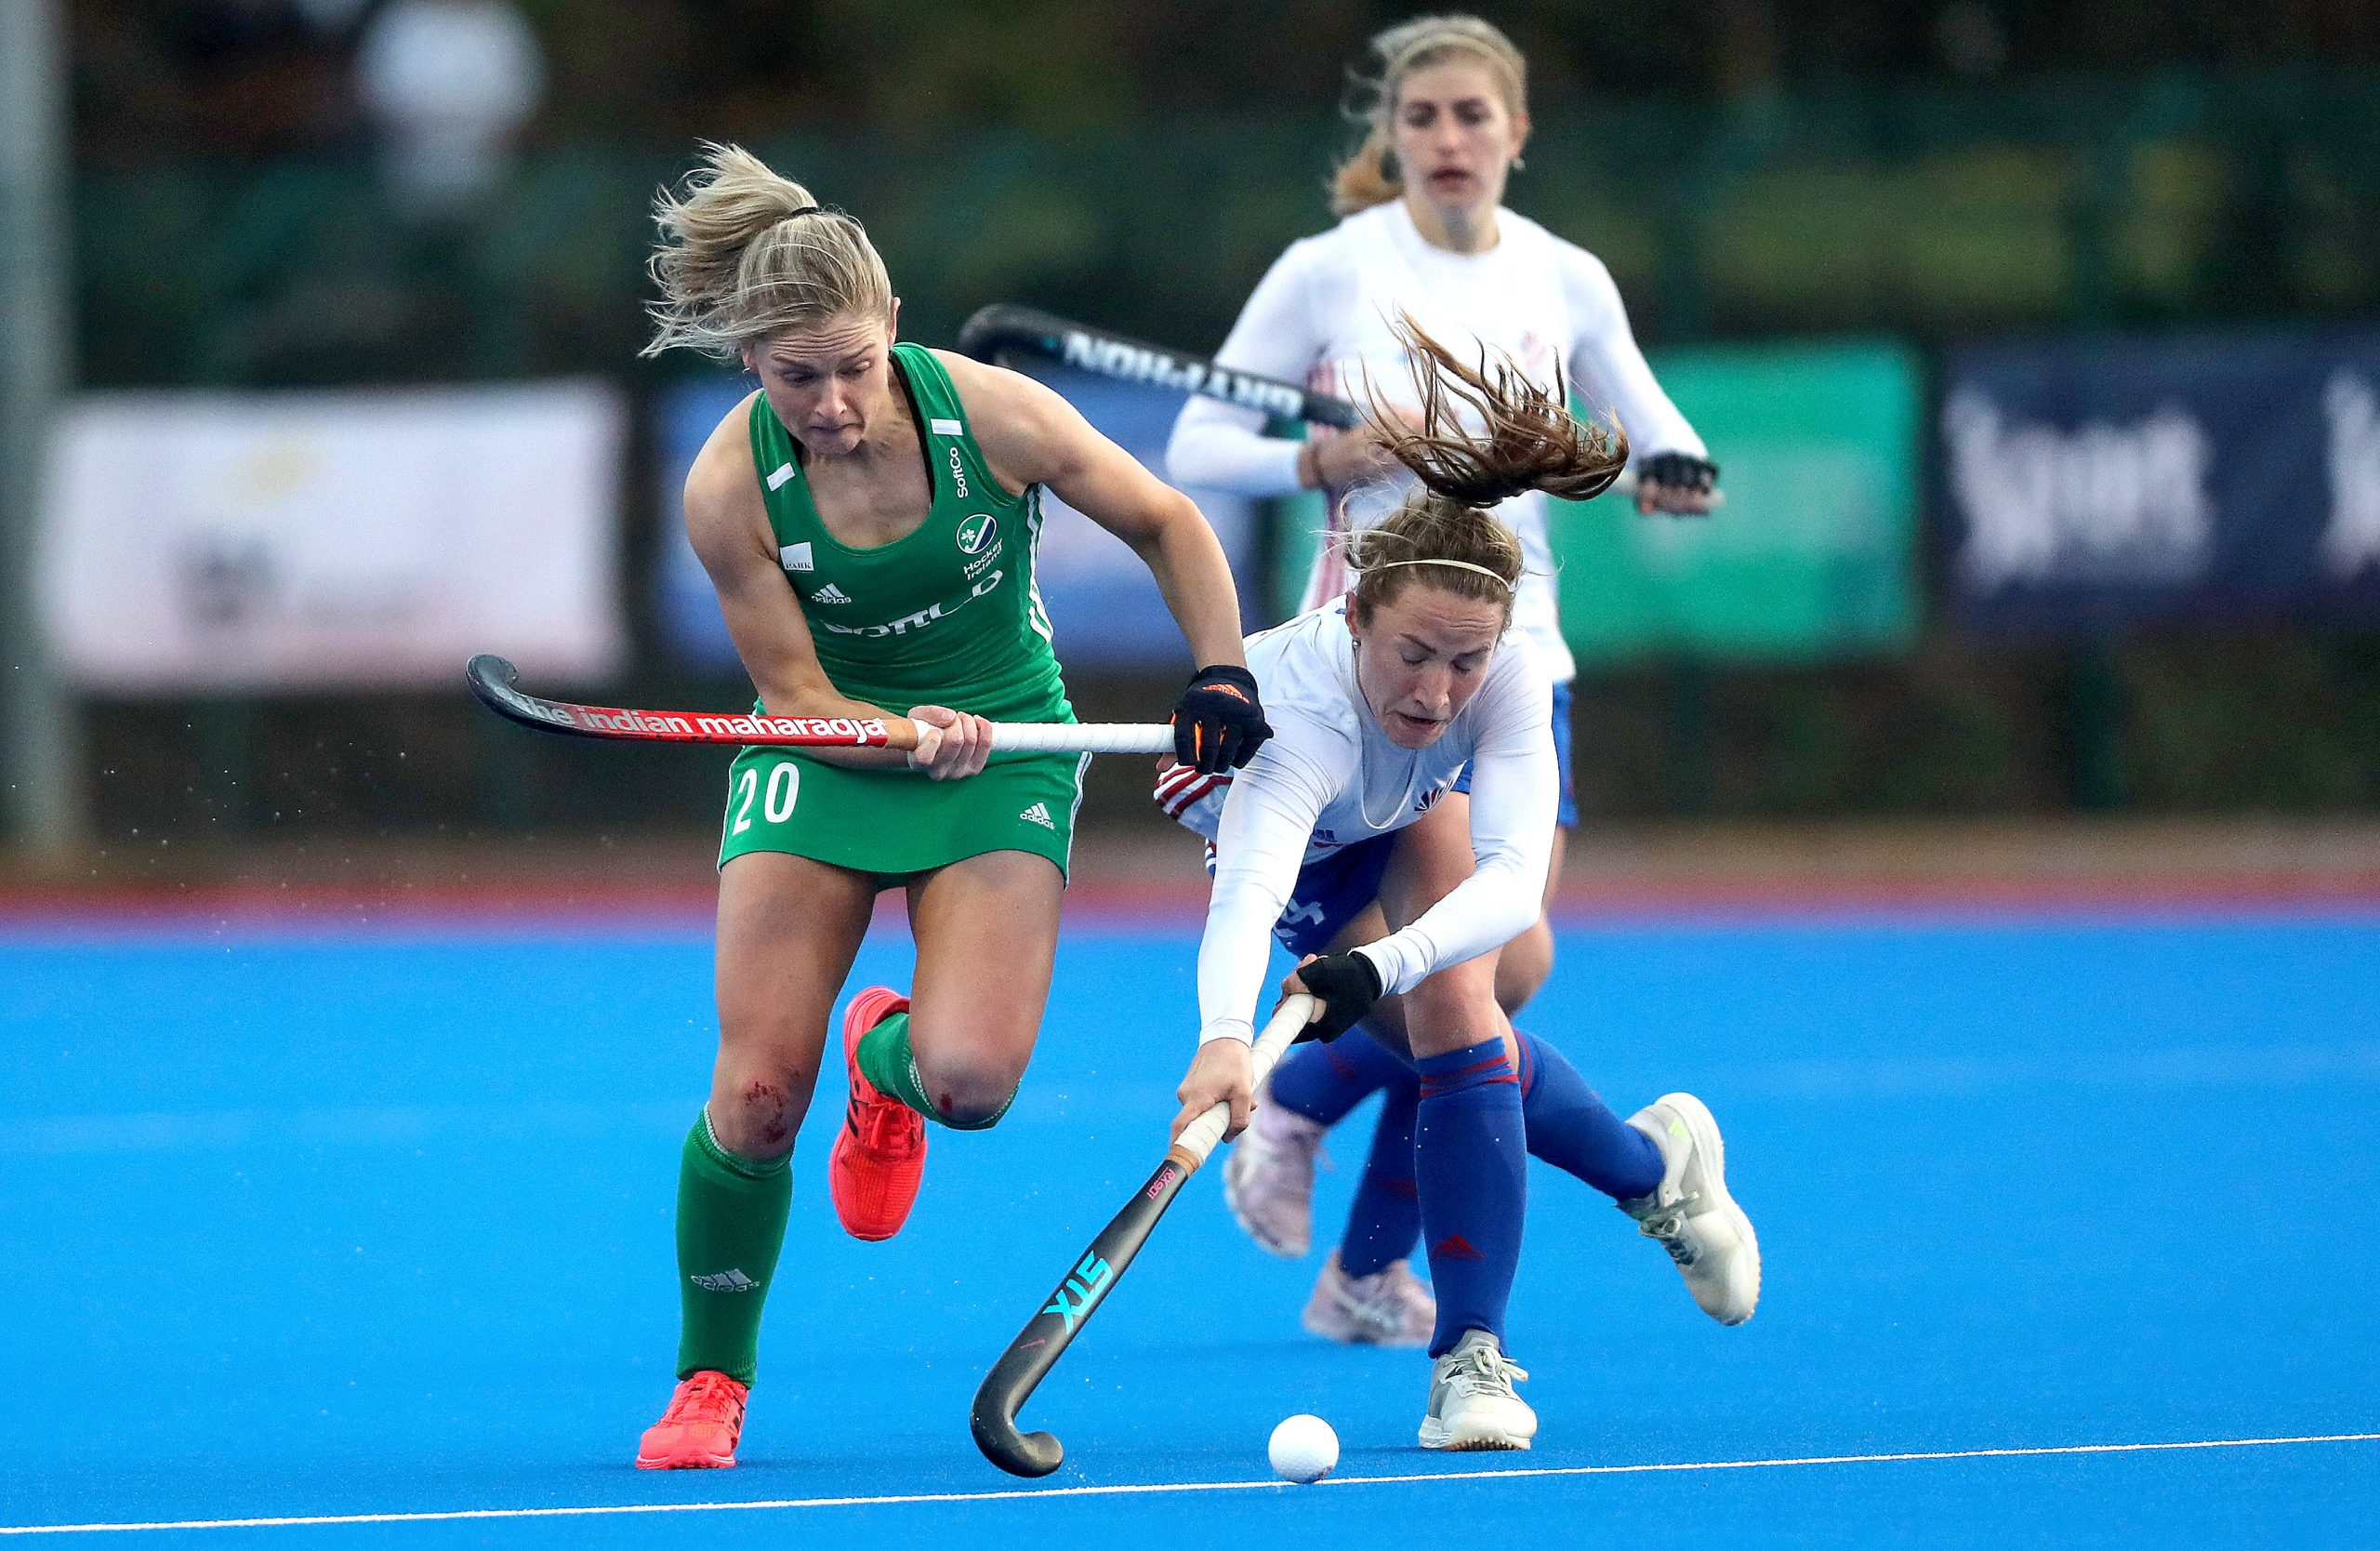 Chloe Watkins and Shona McCallin battle for the ball during the Ireland Vs Great Britain SoftCo series match